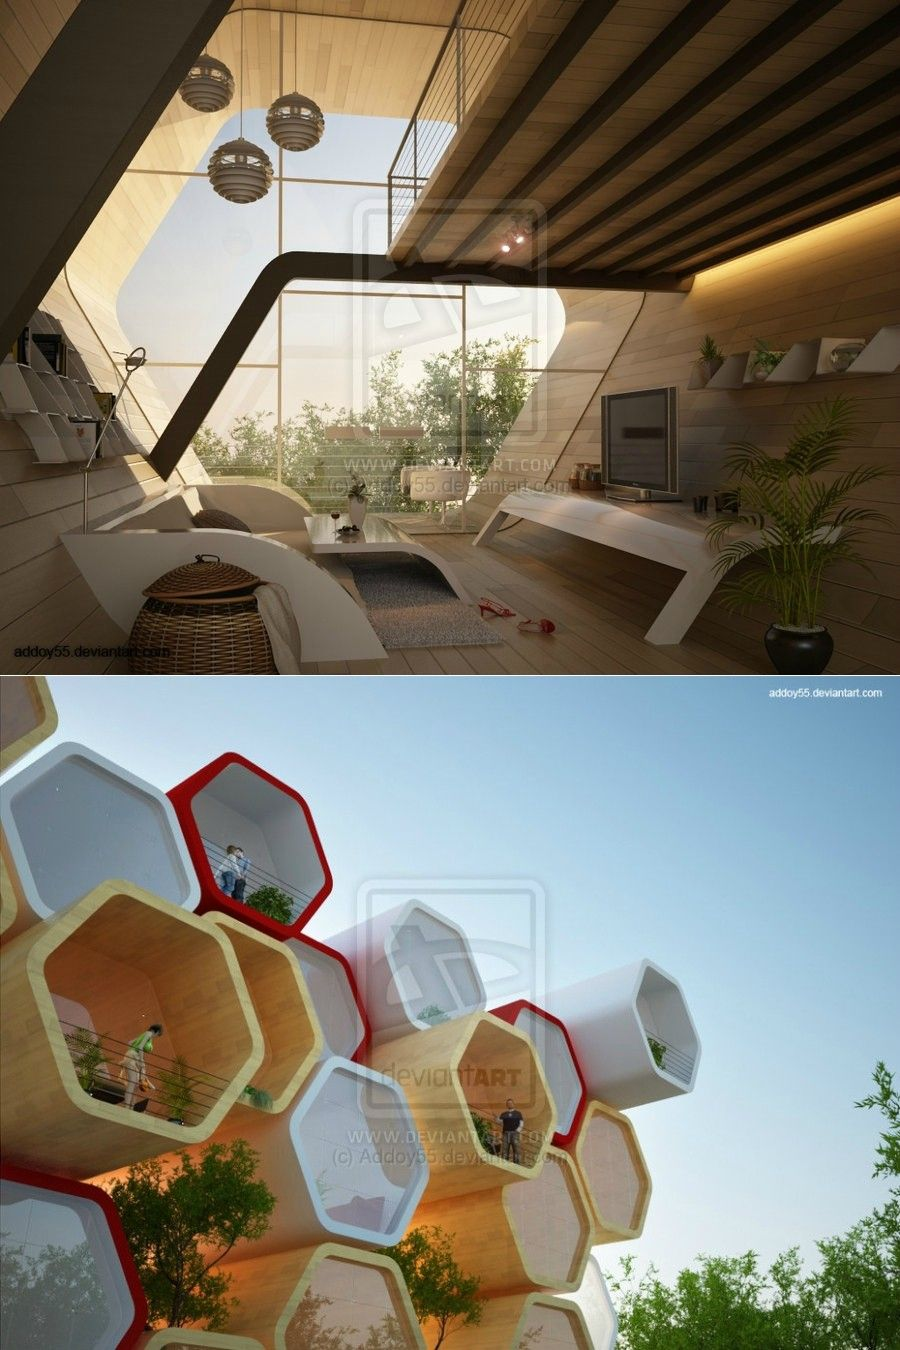 Modern Architecture Origin interesting room concept [900x1350] | modern architecture, future